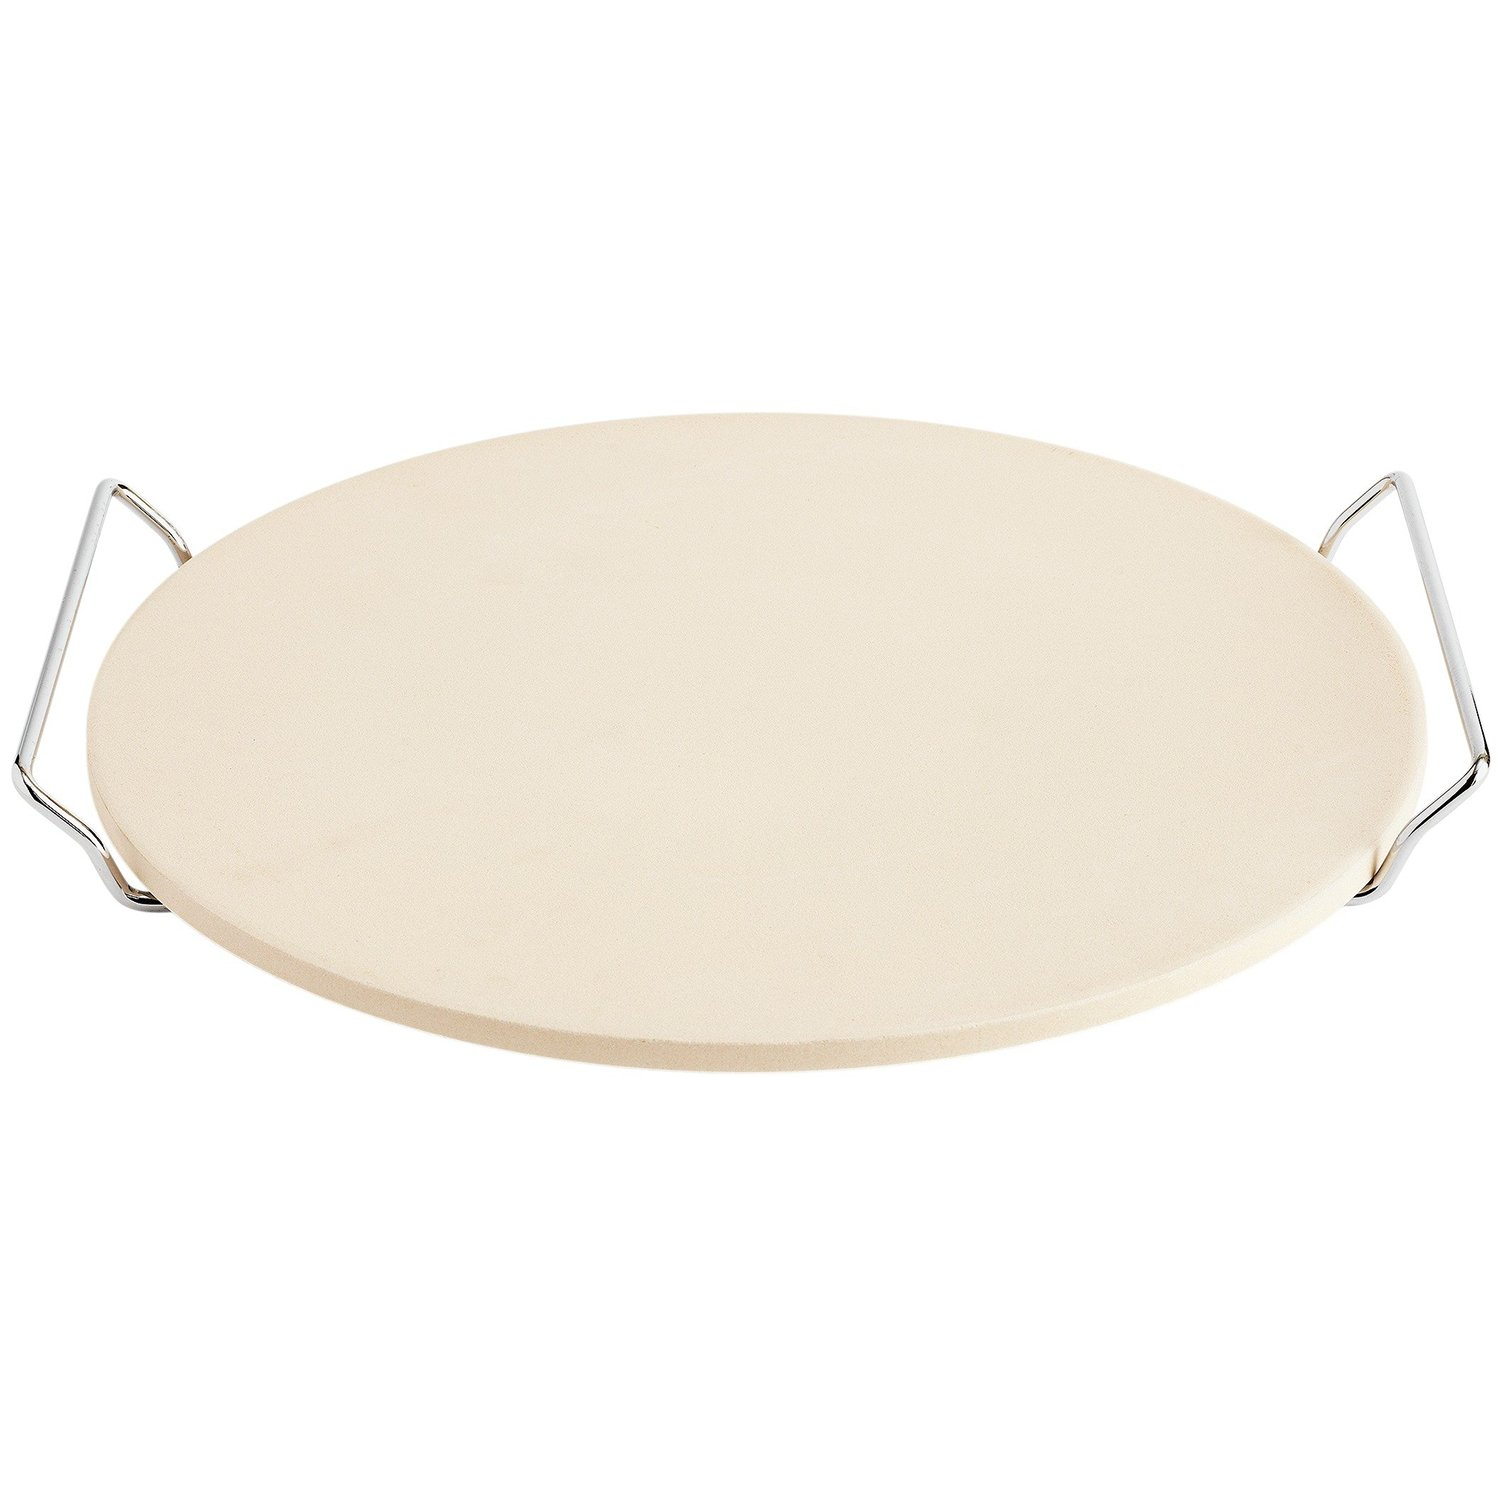 Jamie Oliver Keep It Simple Pizza Stone and Serving Rack by Jamie Oliver JC5120